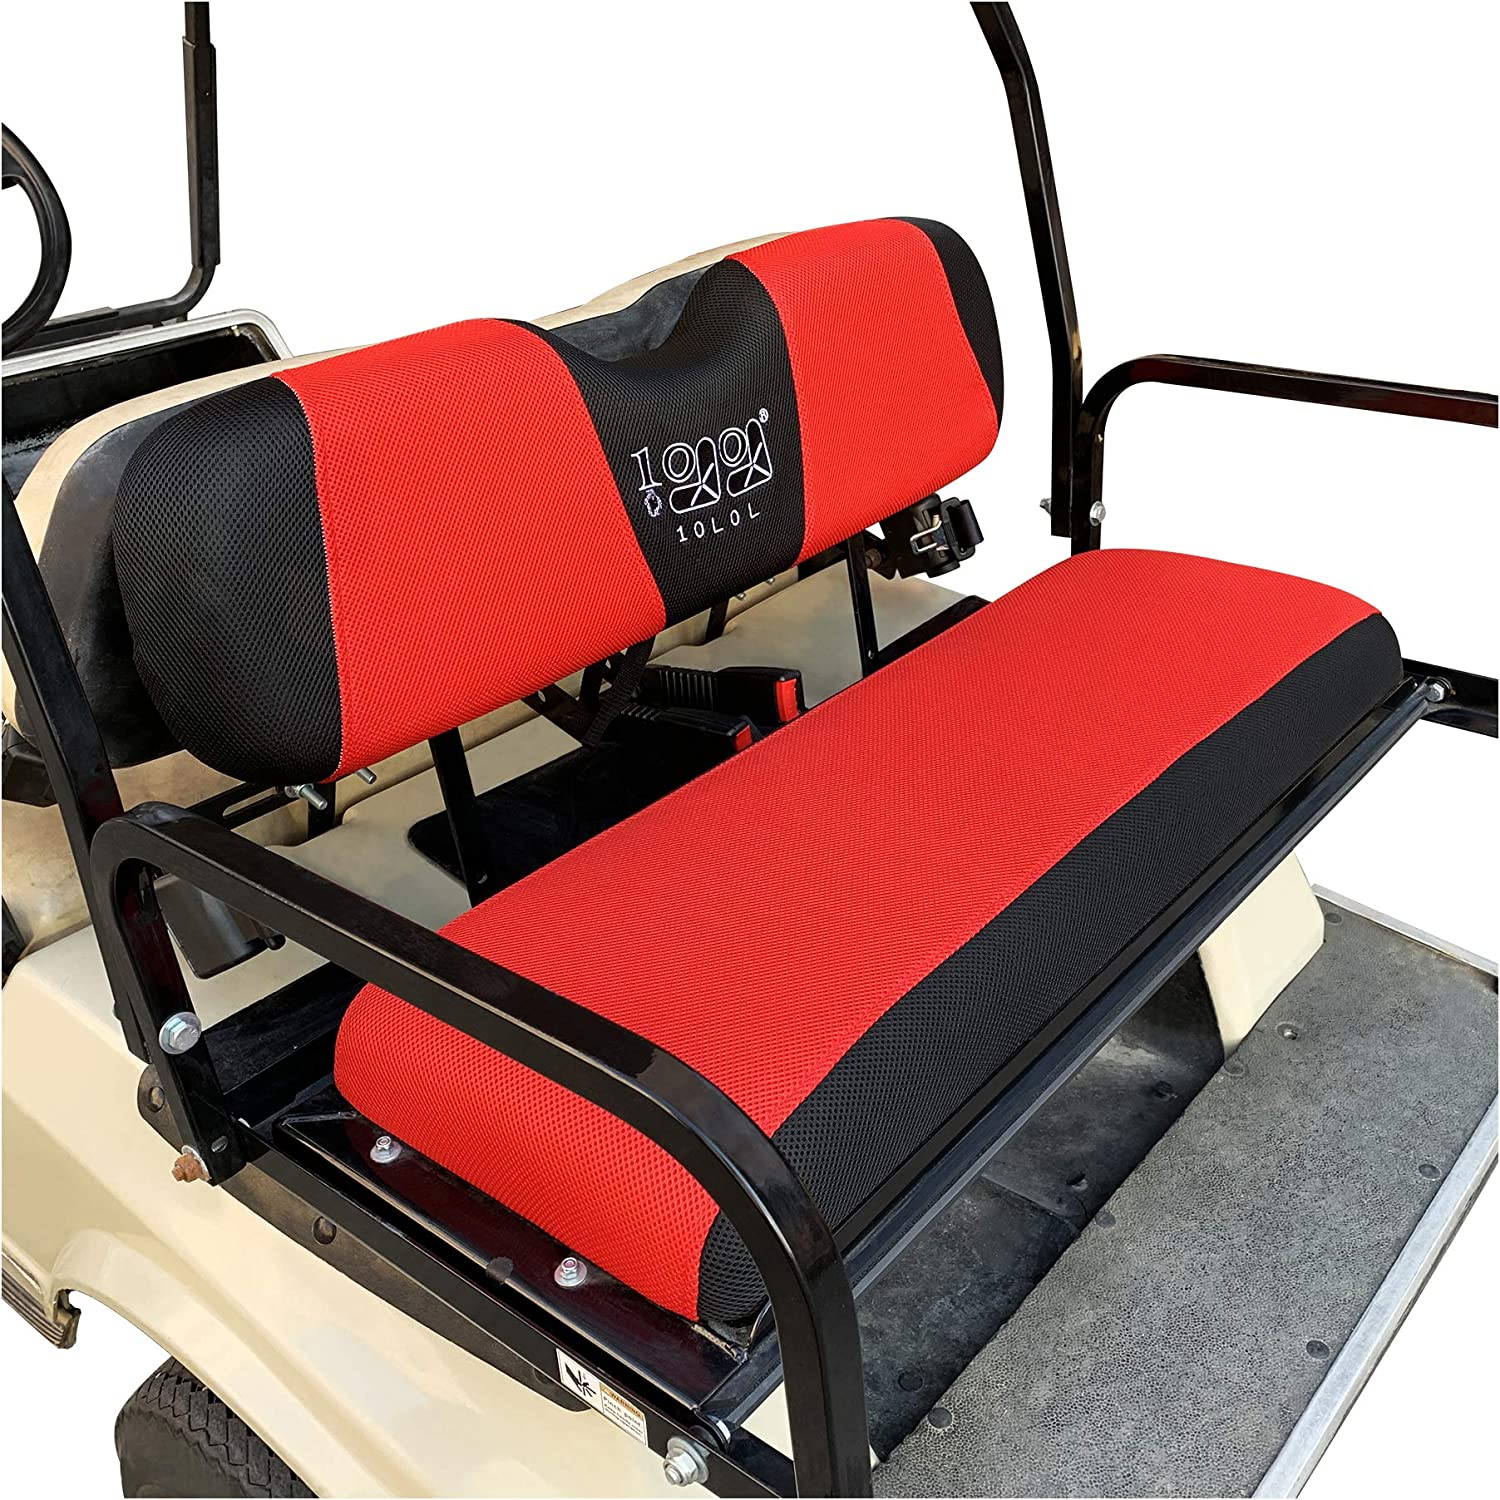 9.99WORLD MALL Golf Cart Rear Seat Cover Set Fit for Club Car EZGO Yamaha, Warm Bench Seat Covers for Cold Winter Weather, Breathable Washable Polyester Mesh Cloth Gray Black Beige Red